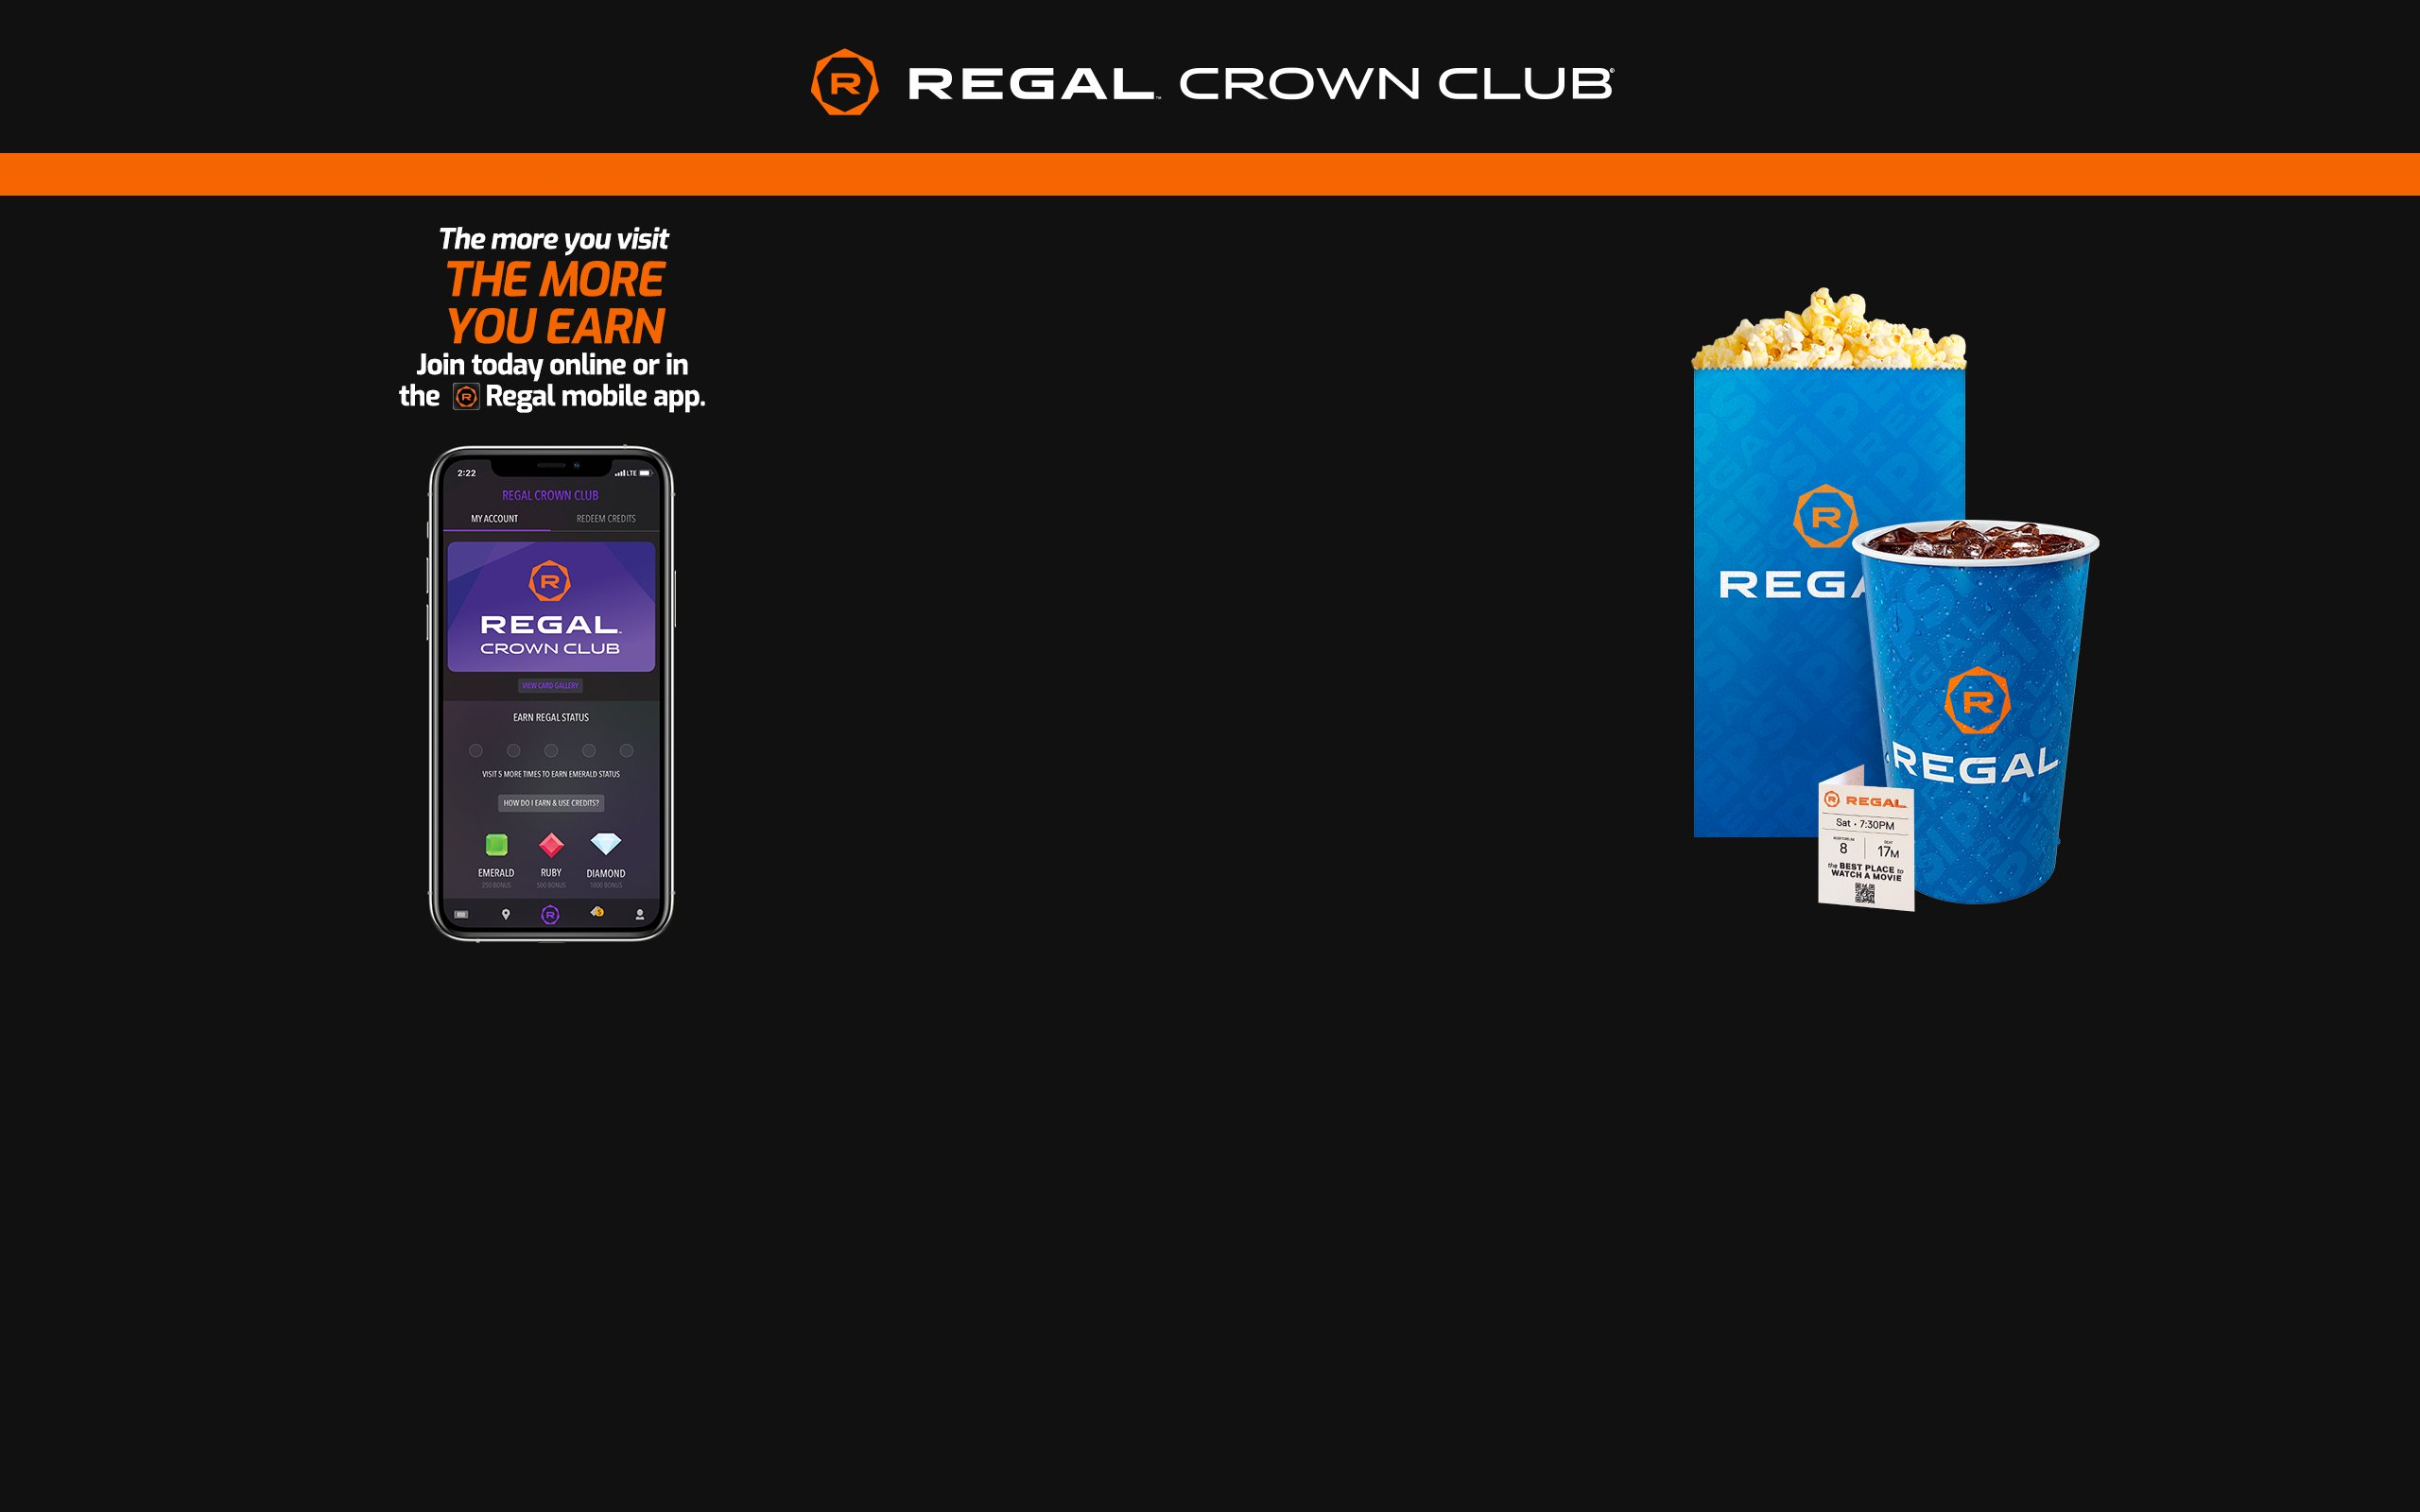 Regal Crown Club - Download The Regal Movies Mobile App, Sign Up For Regal Crown Club Today and Start Earning Free Rewards